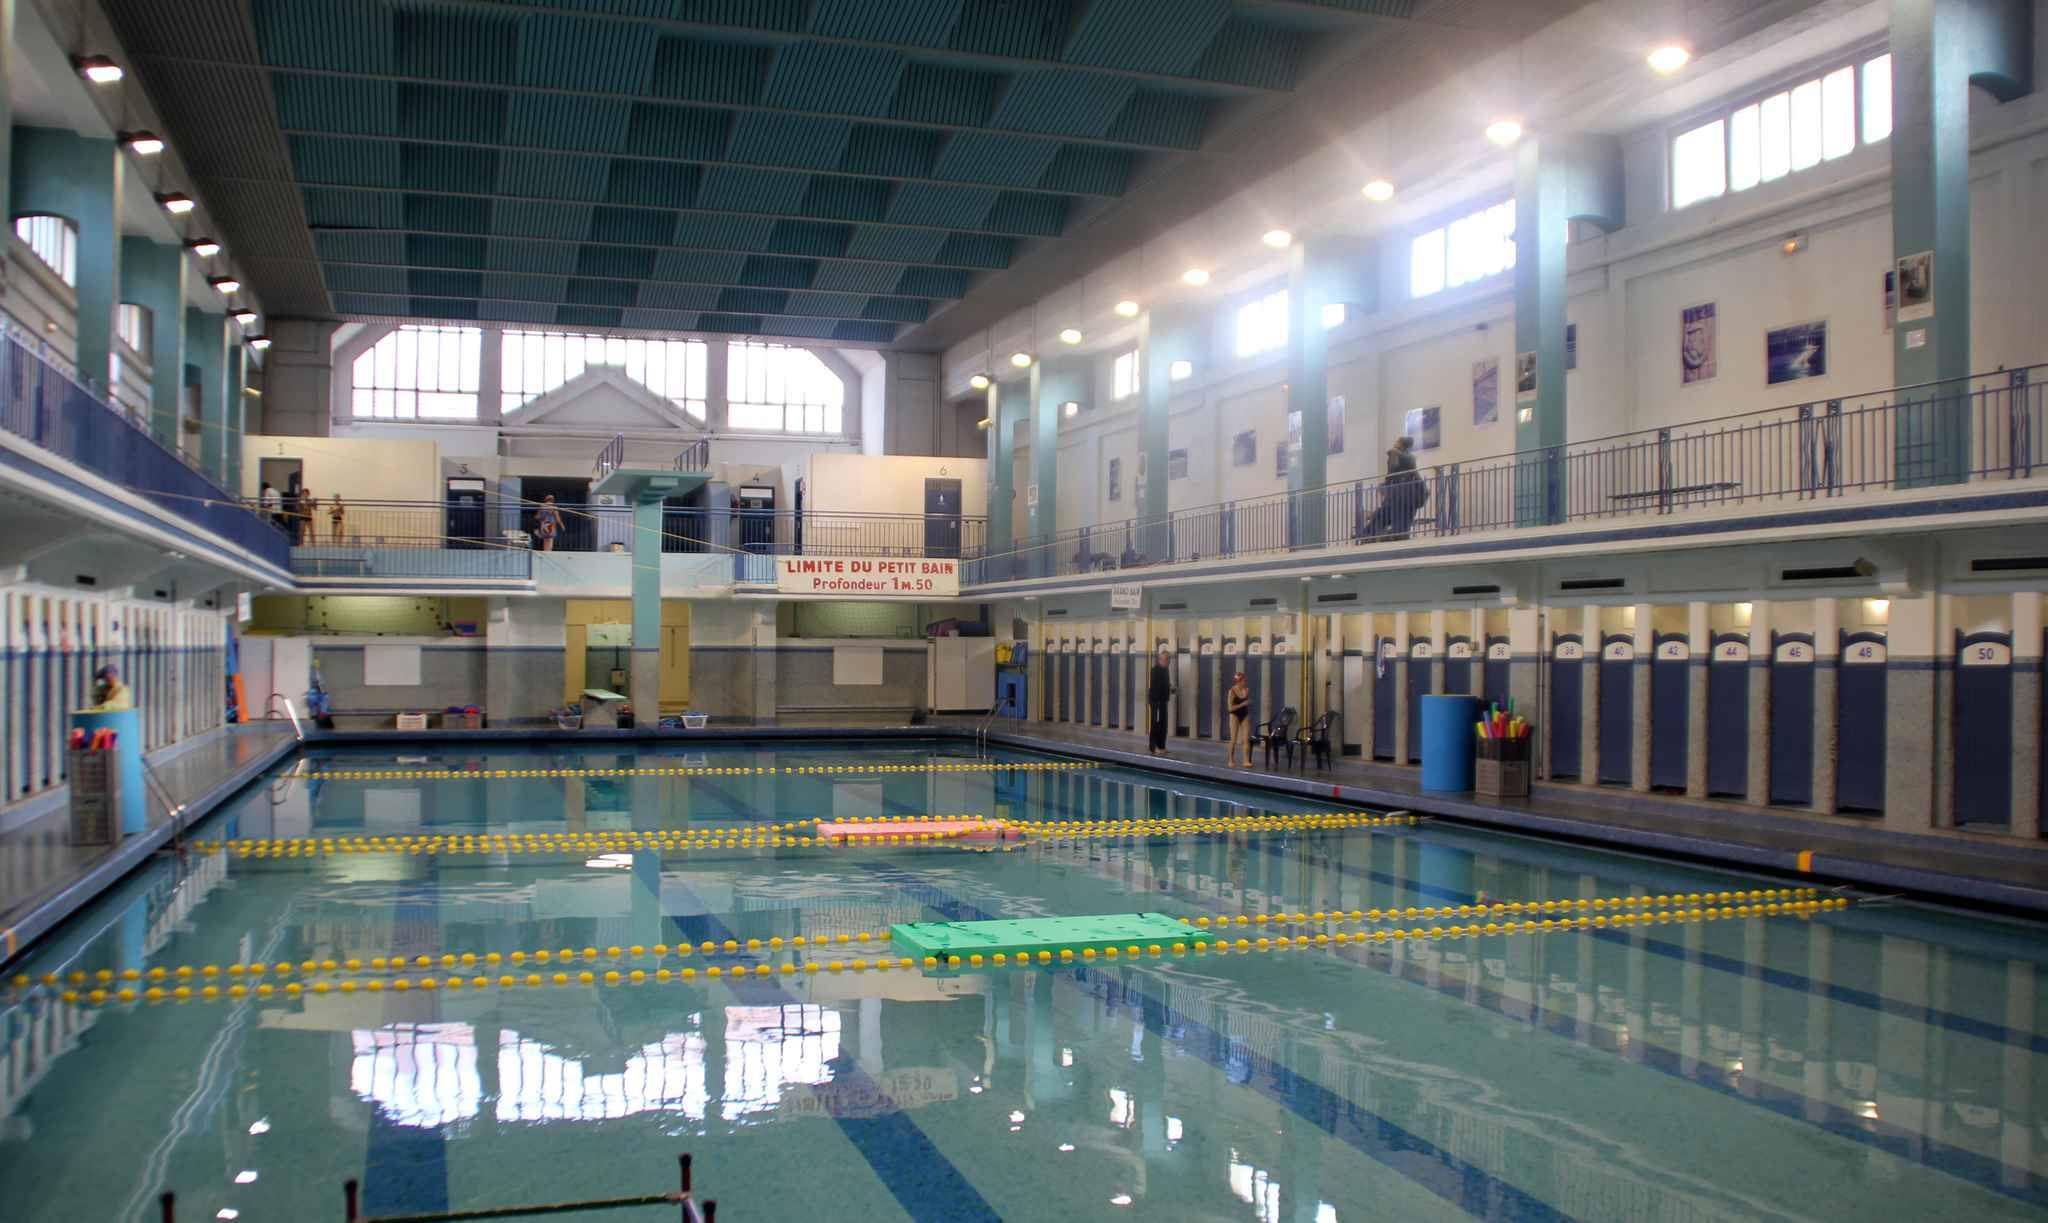 Rennes la piscine saint georges bient t class e aux for Piscine saint georges rennes